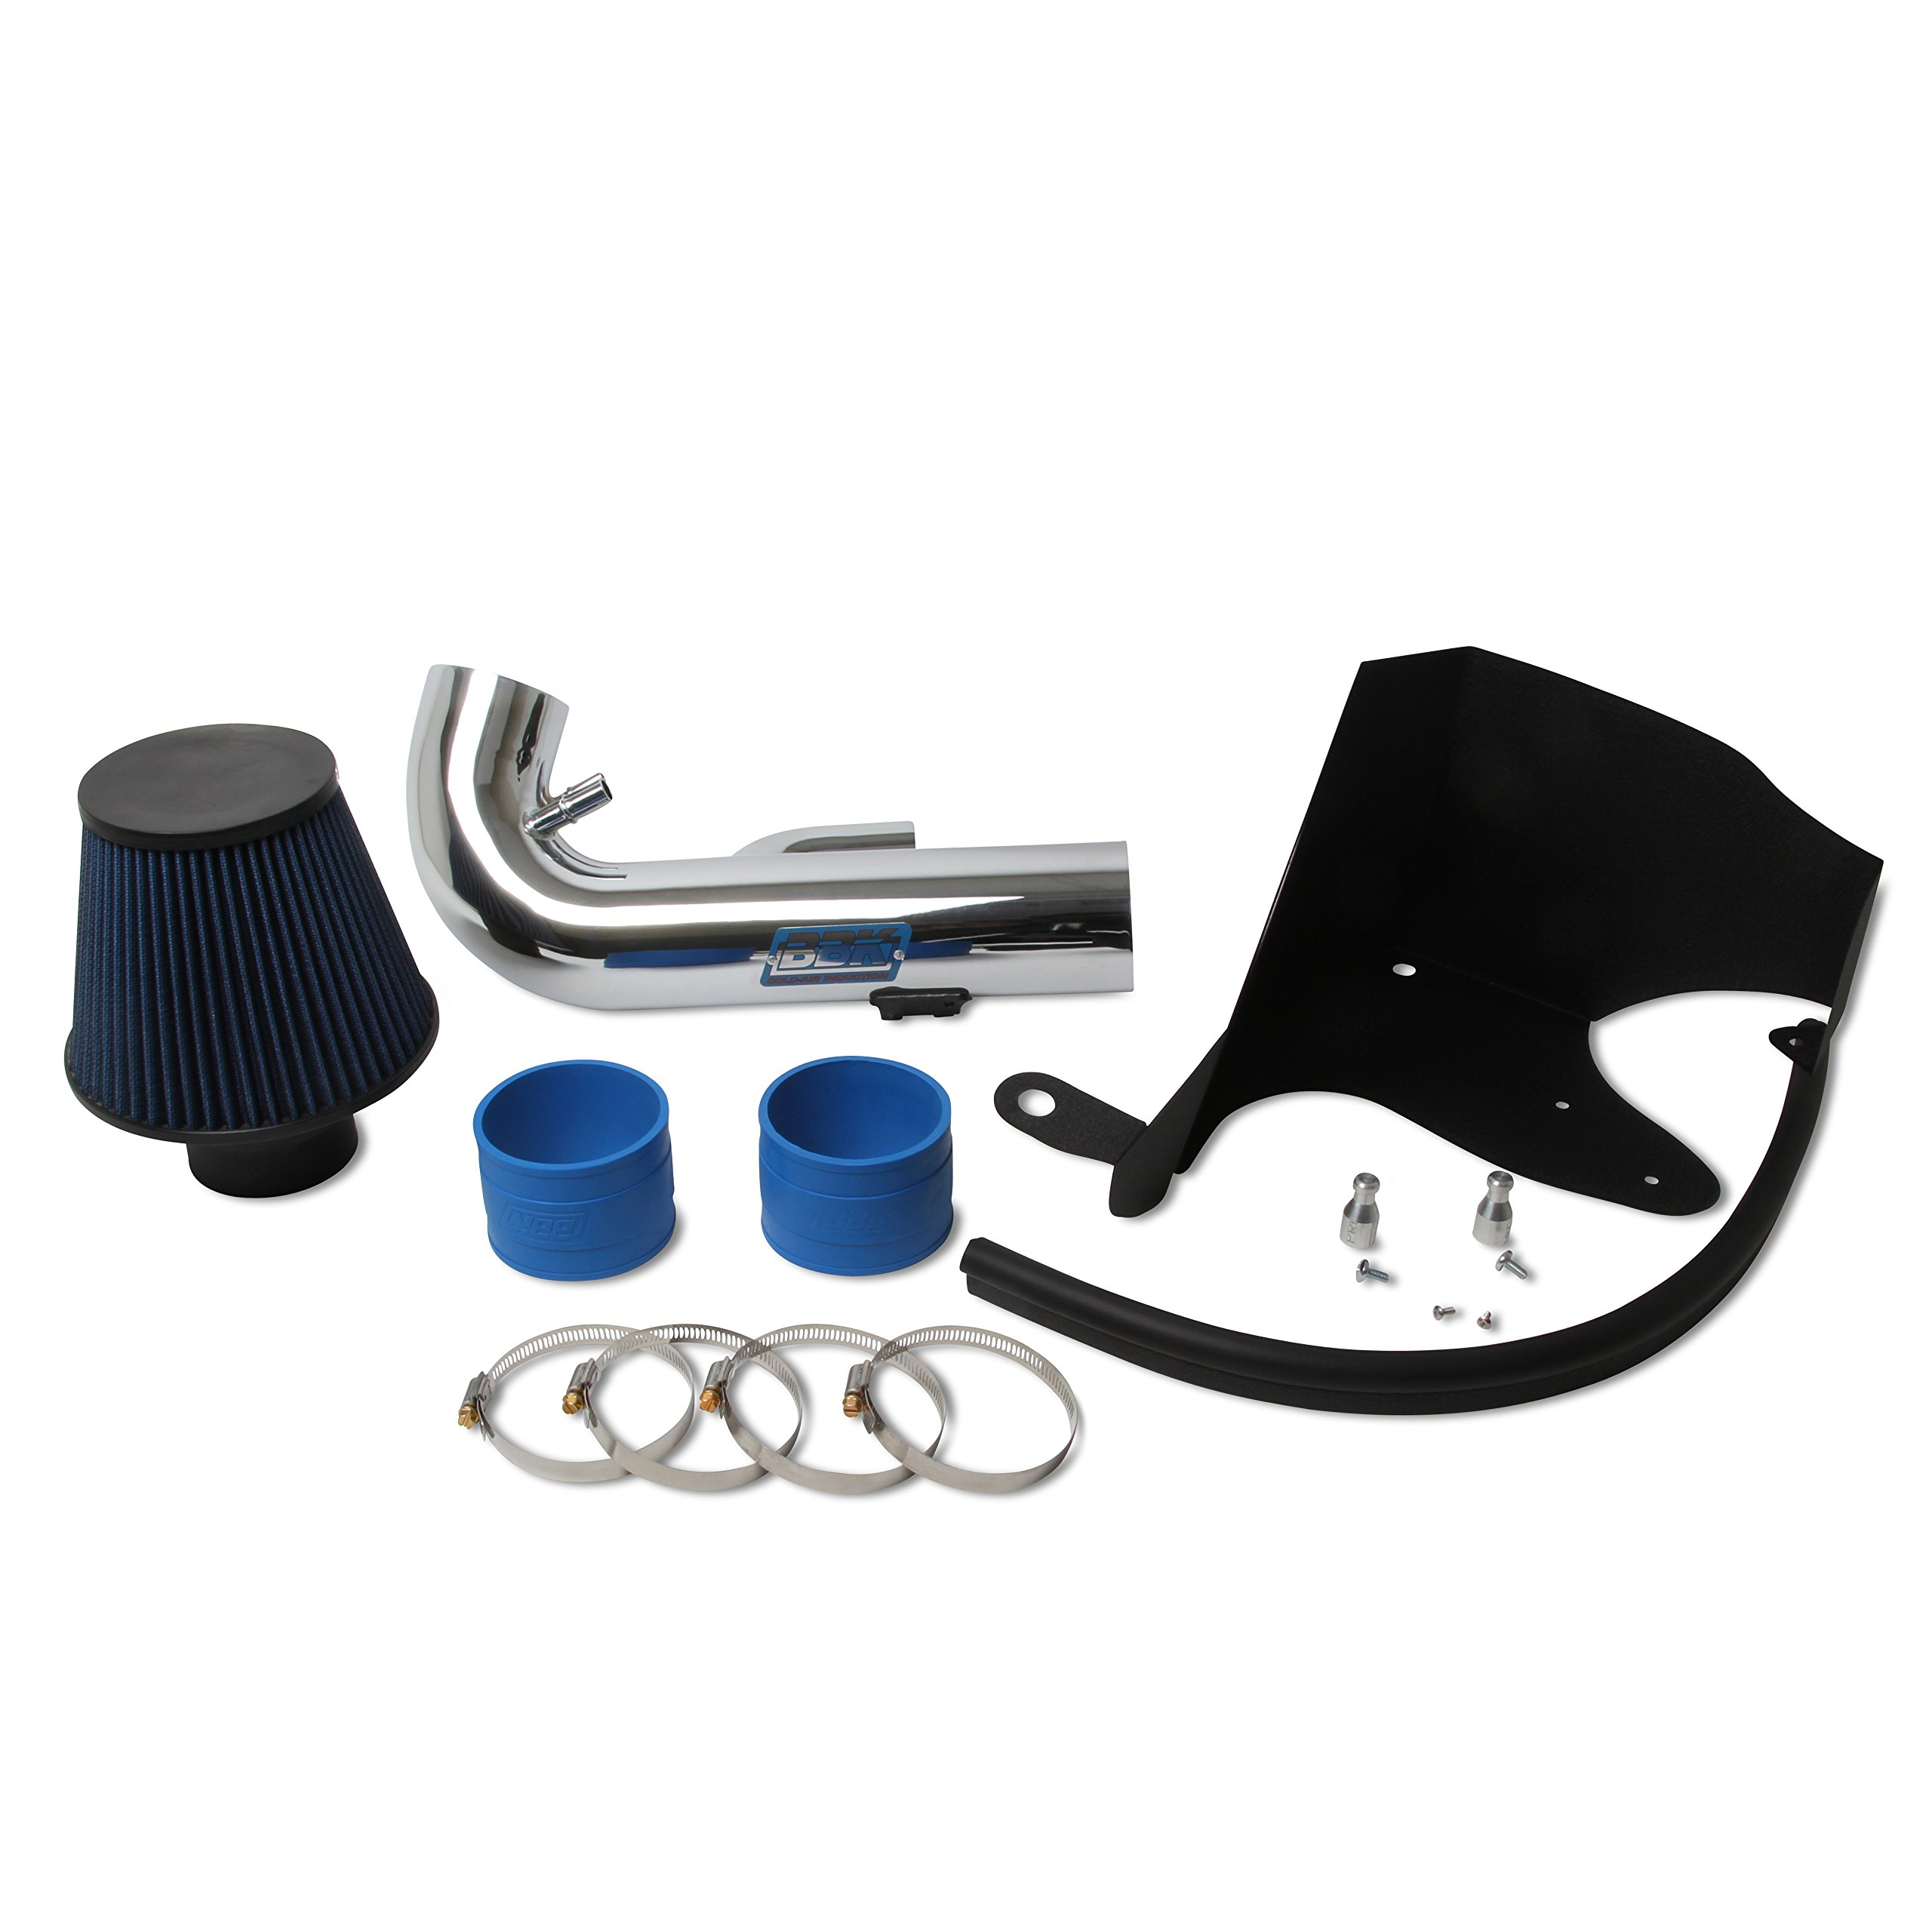 BBK 1768 Cold Air Intake System - Power Plus Series Performance Kit for Mustang GT 5.0L - Chrome Finish by BBK Performance (Image #2)